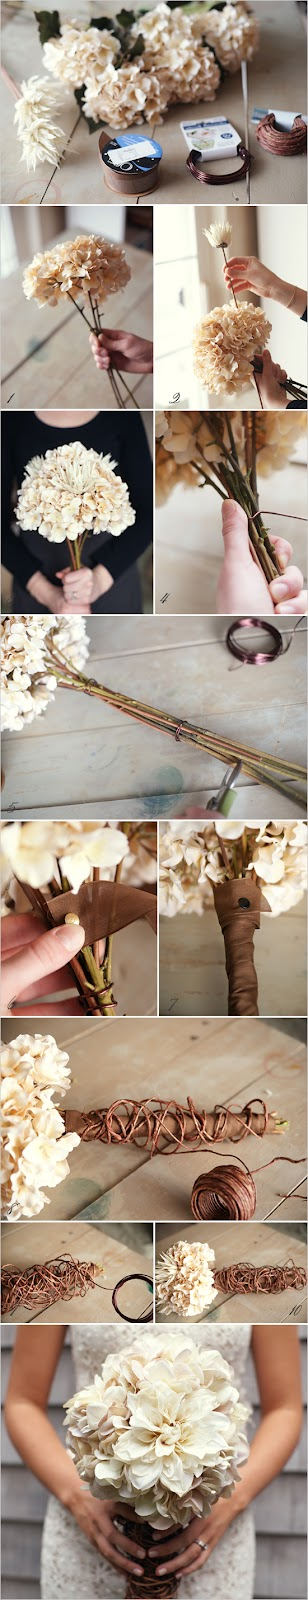 diy mum bouquet DIY Inspiration: Hydrangea and Mum Bouquet